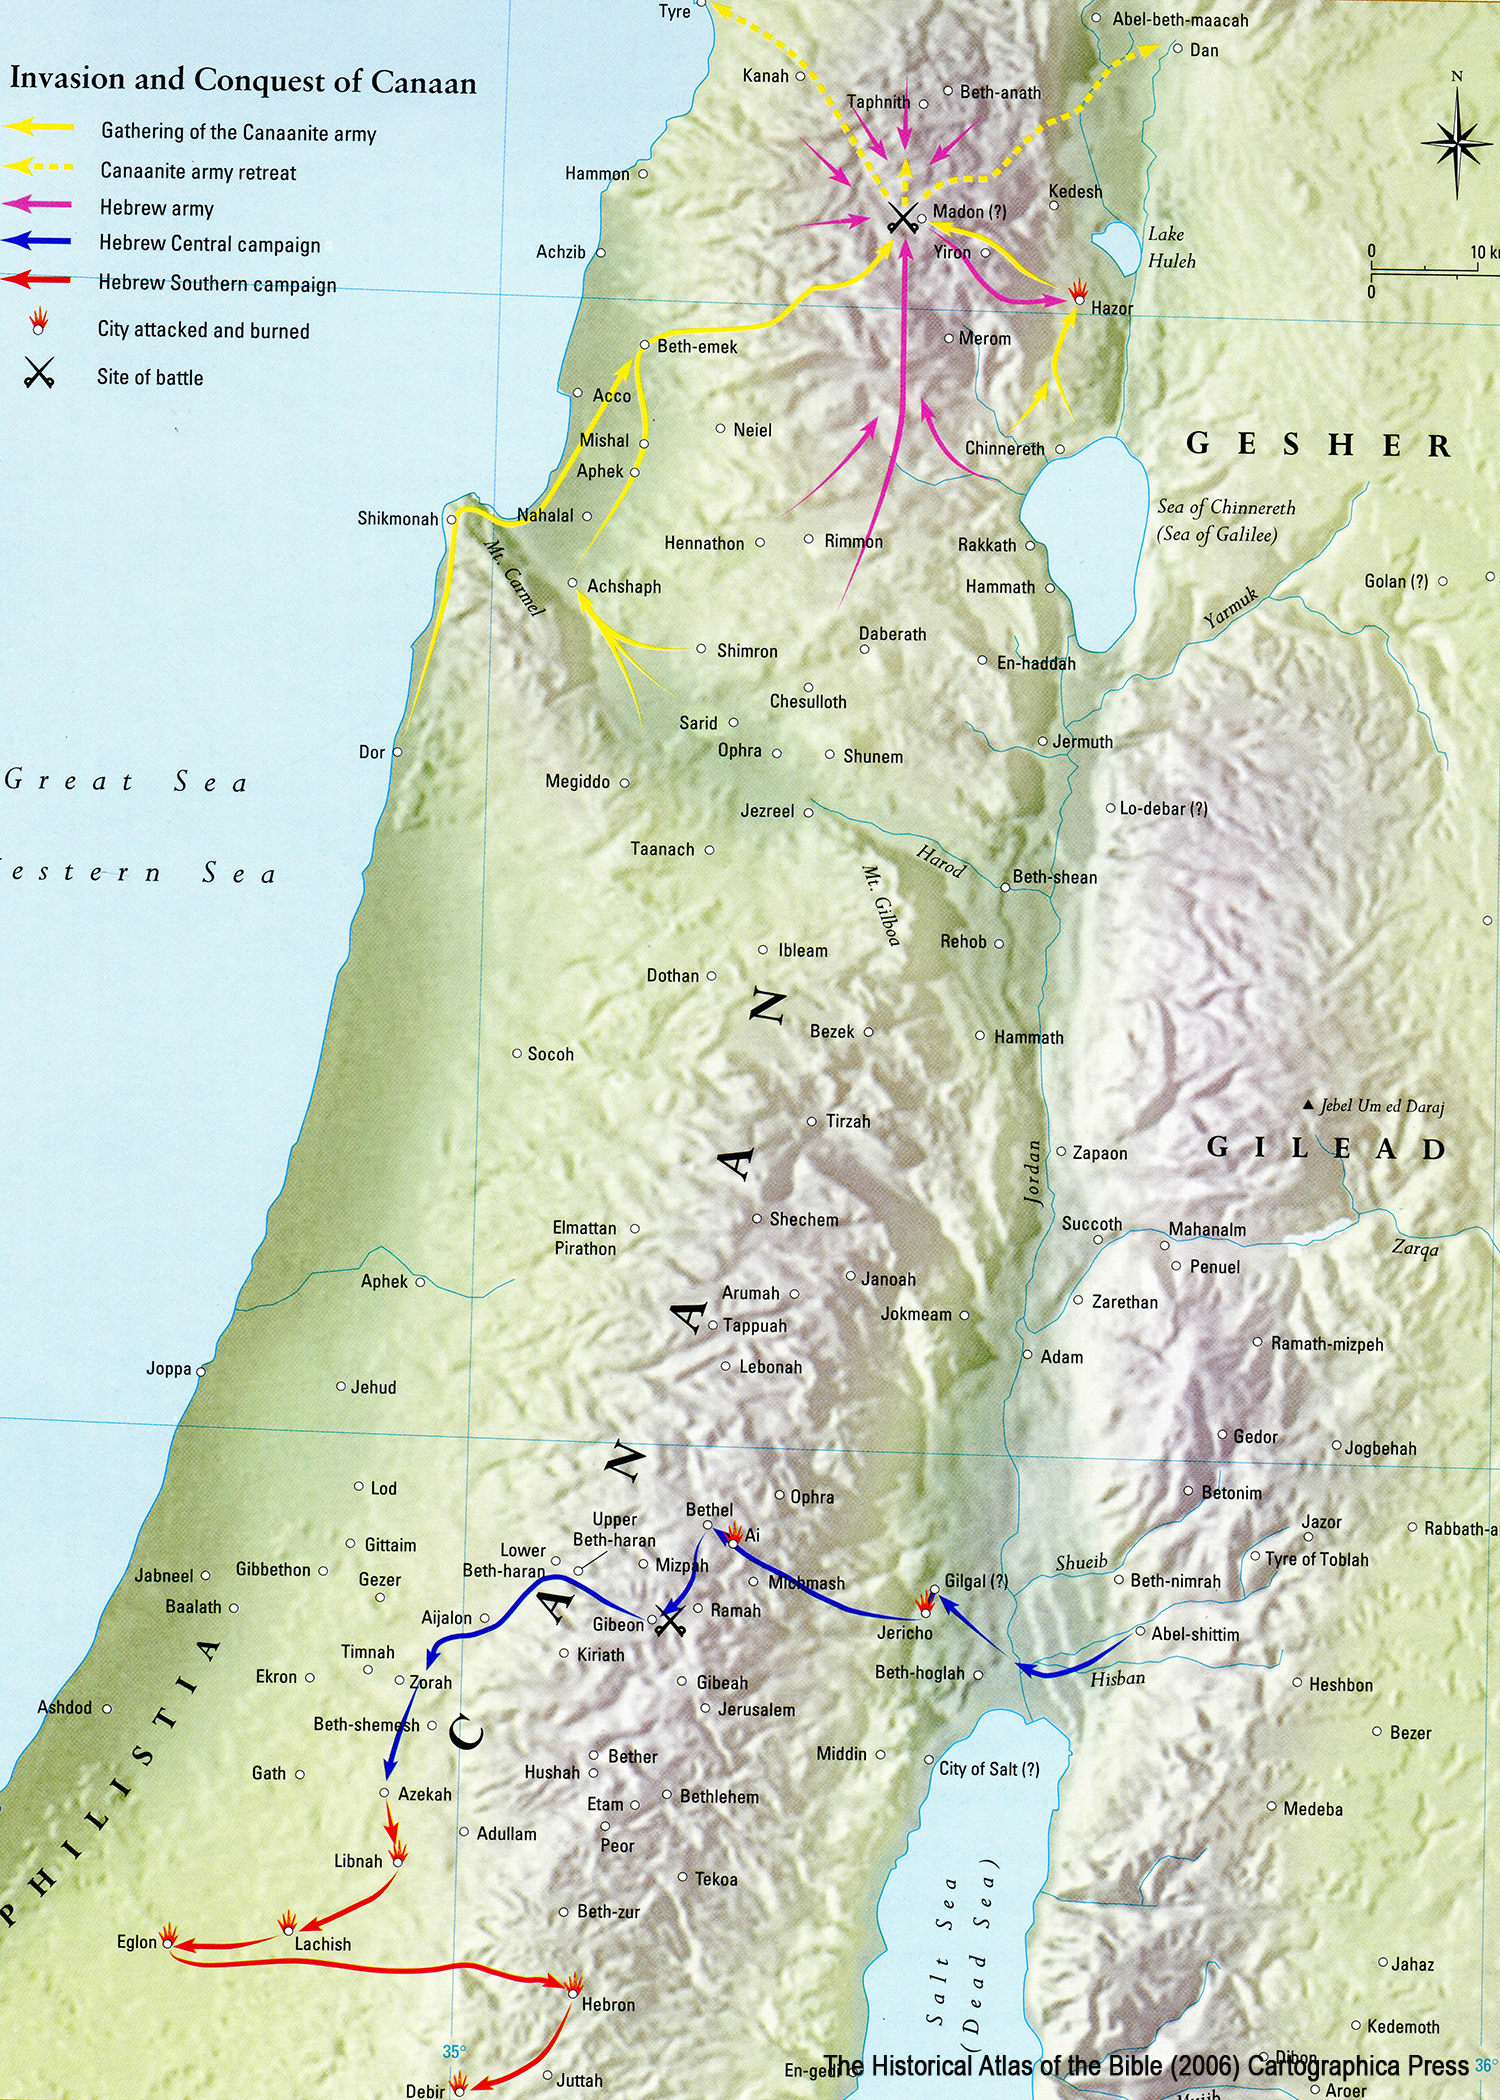 Ancient Middle East map, ancient maps, Biblical maps, Allotment PROMISED LAND, Conquest of Canaan, 12 Tribes Land Division, Israelite Settlements, Joshua 13